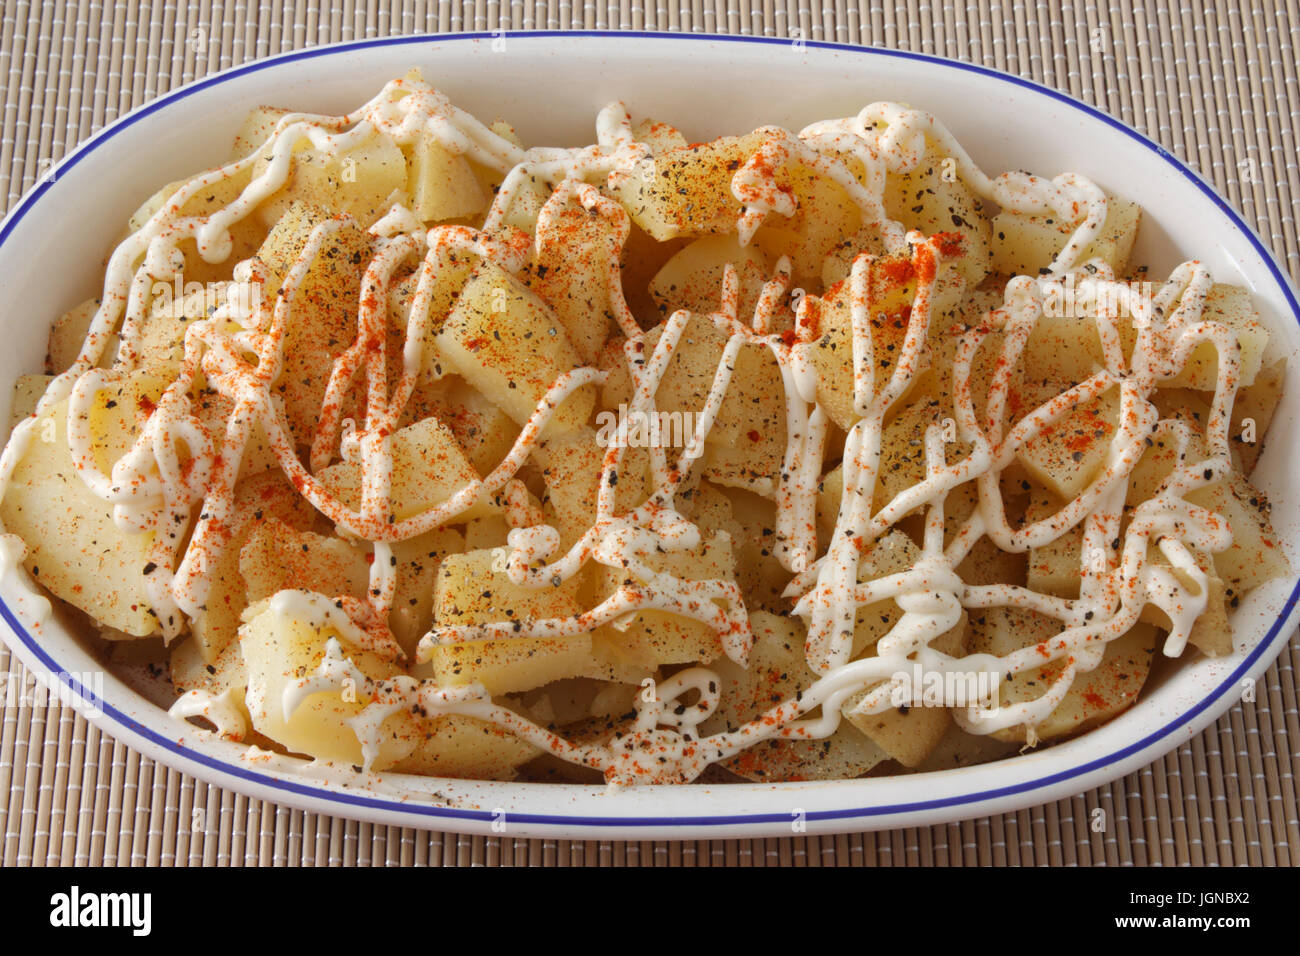 Close-up of potato salad with mayonnaise in oval dish - Stock Image